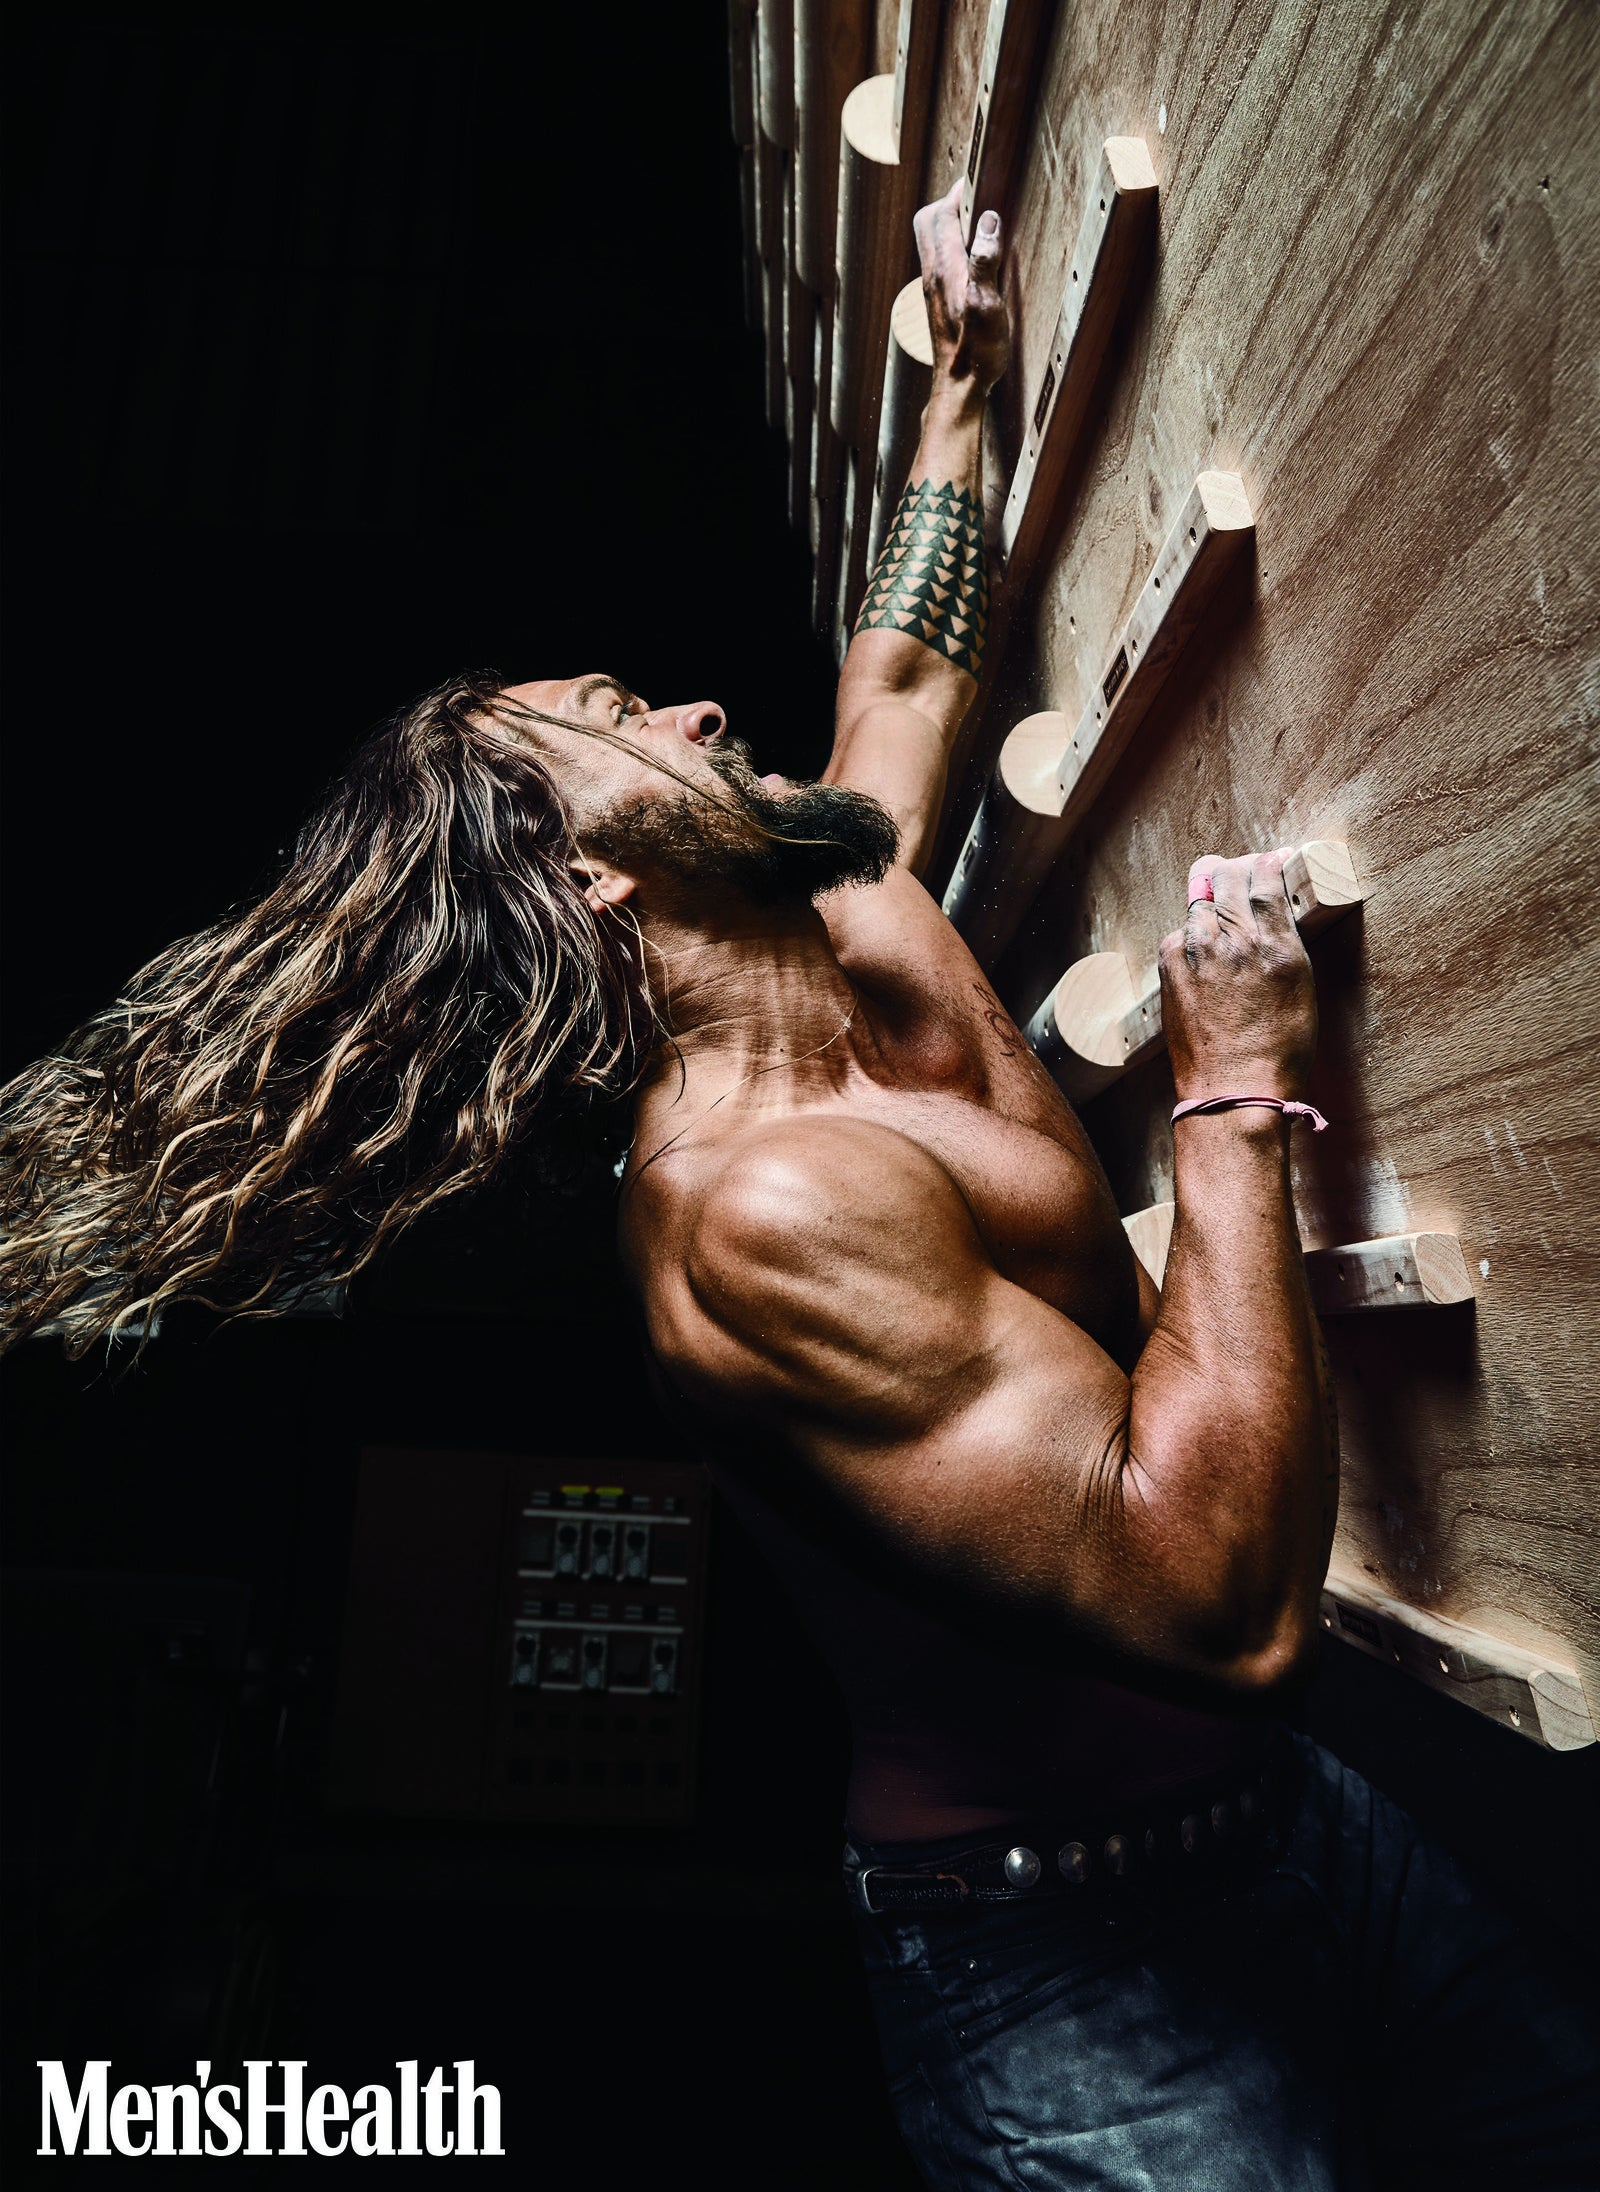 To learn more about Jason Momoa's views on parenthood and learn how to stay in shape, read the rest of his interview with Men & # 39; s Health here.